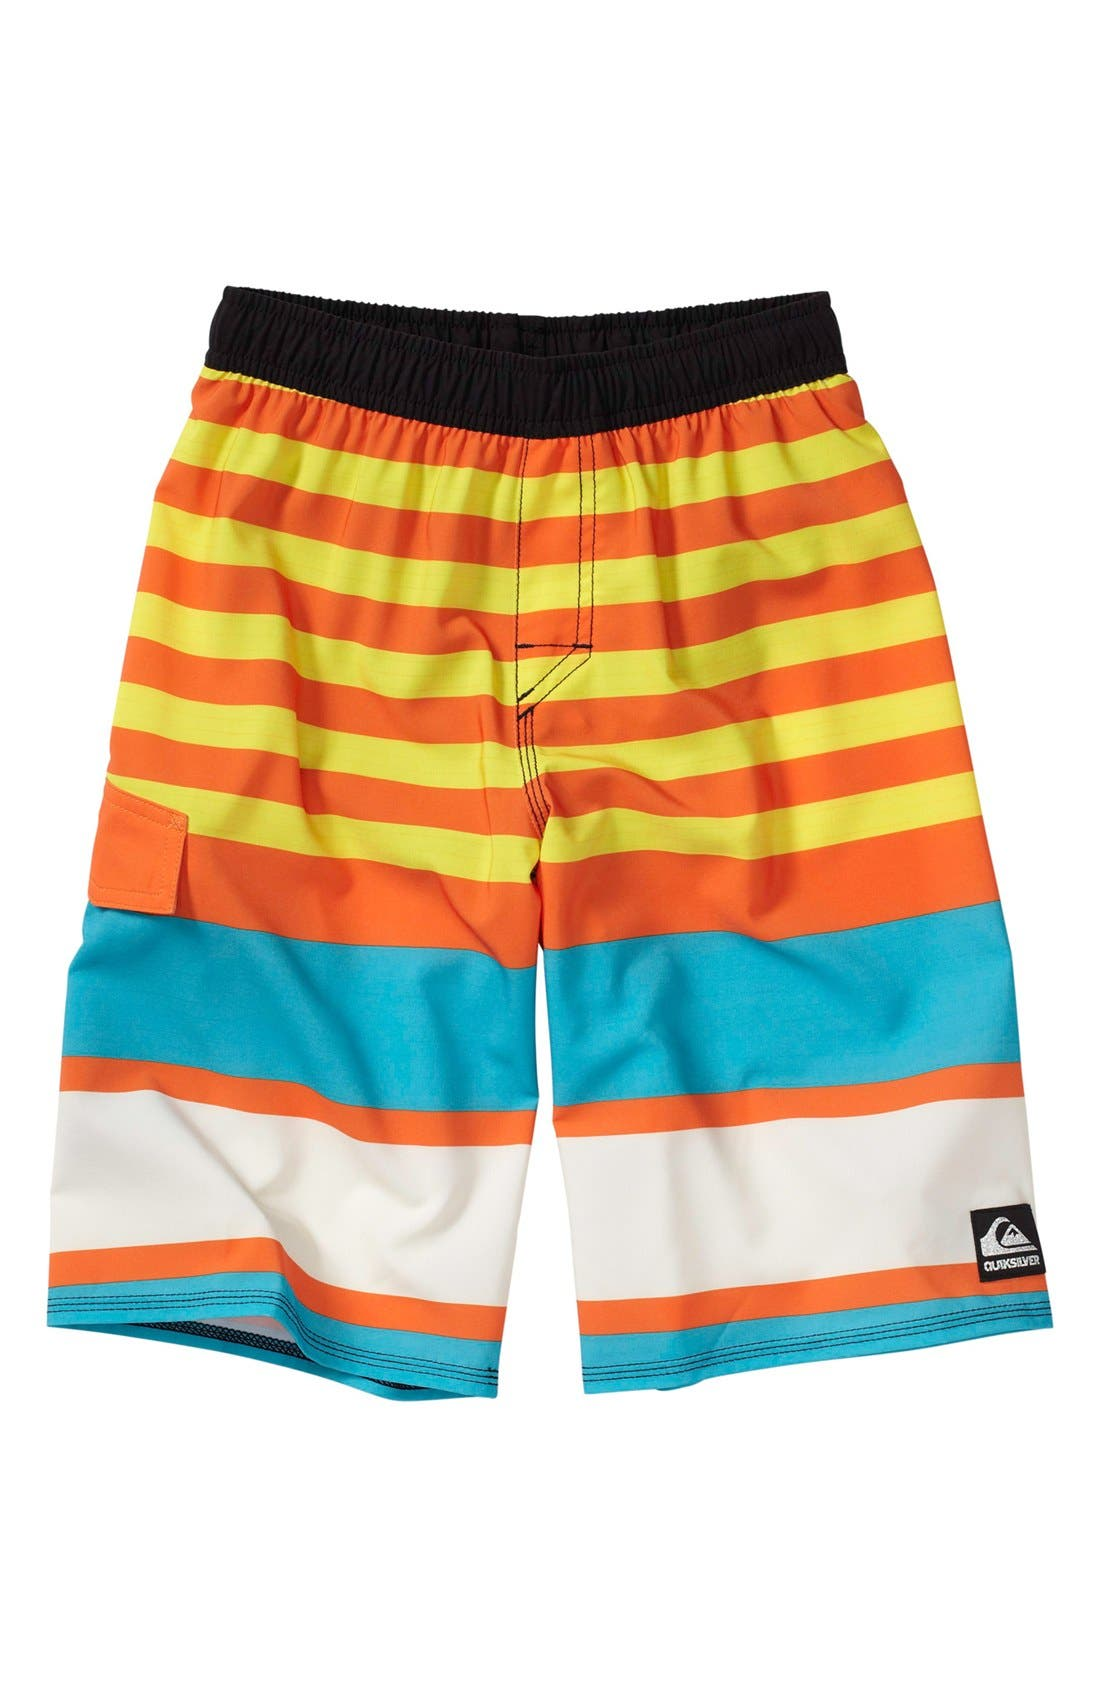 Alternate Image 1 Selected - Quiksilver 'Why Can't You' Volley Shorts (Little Boys)